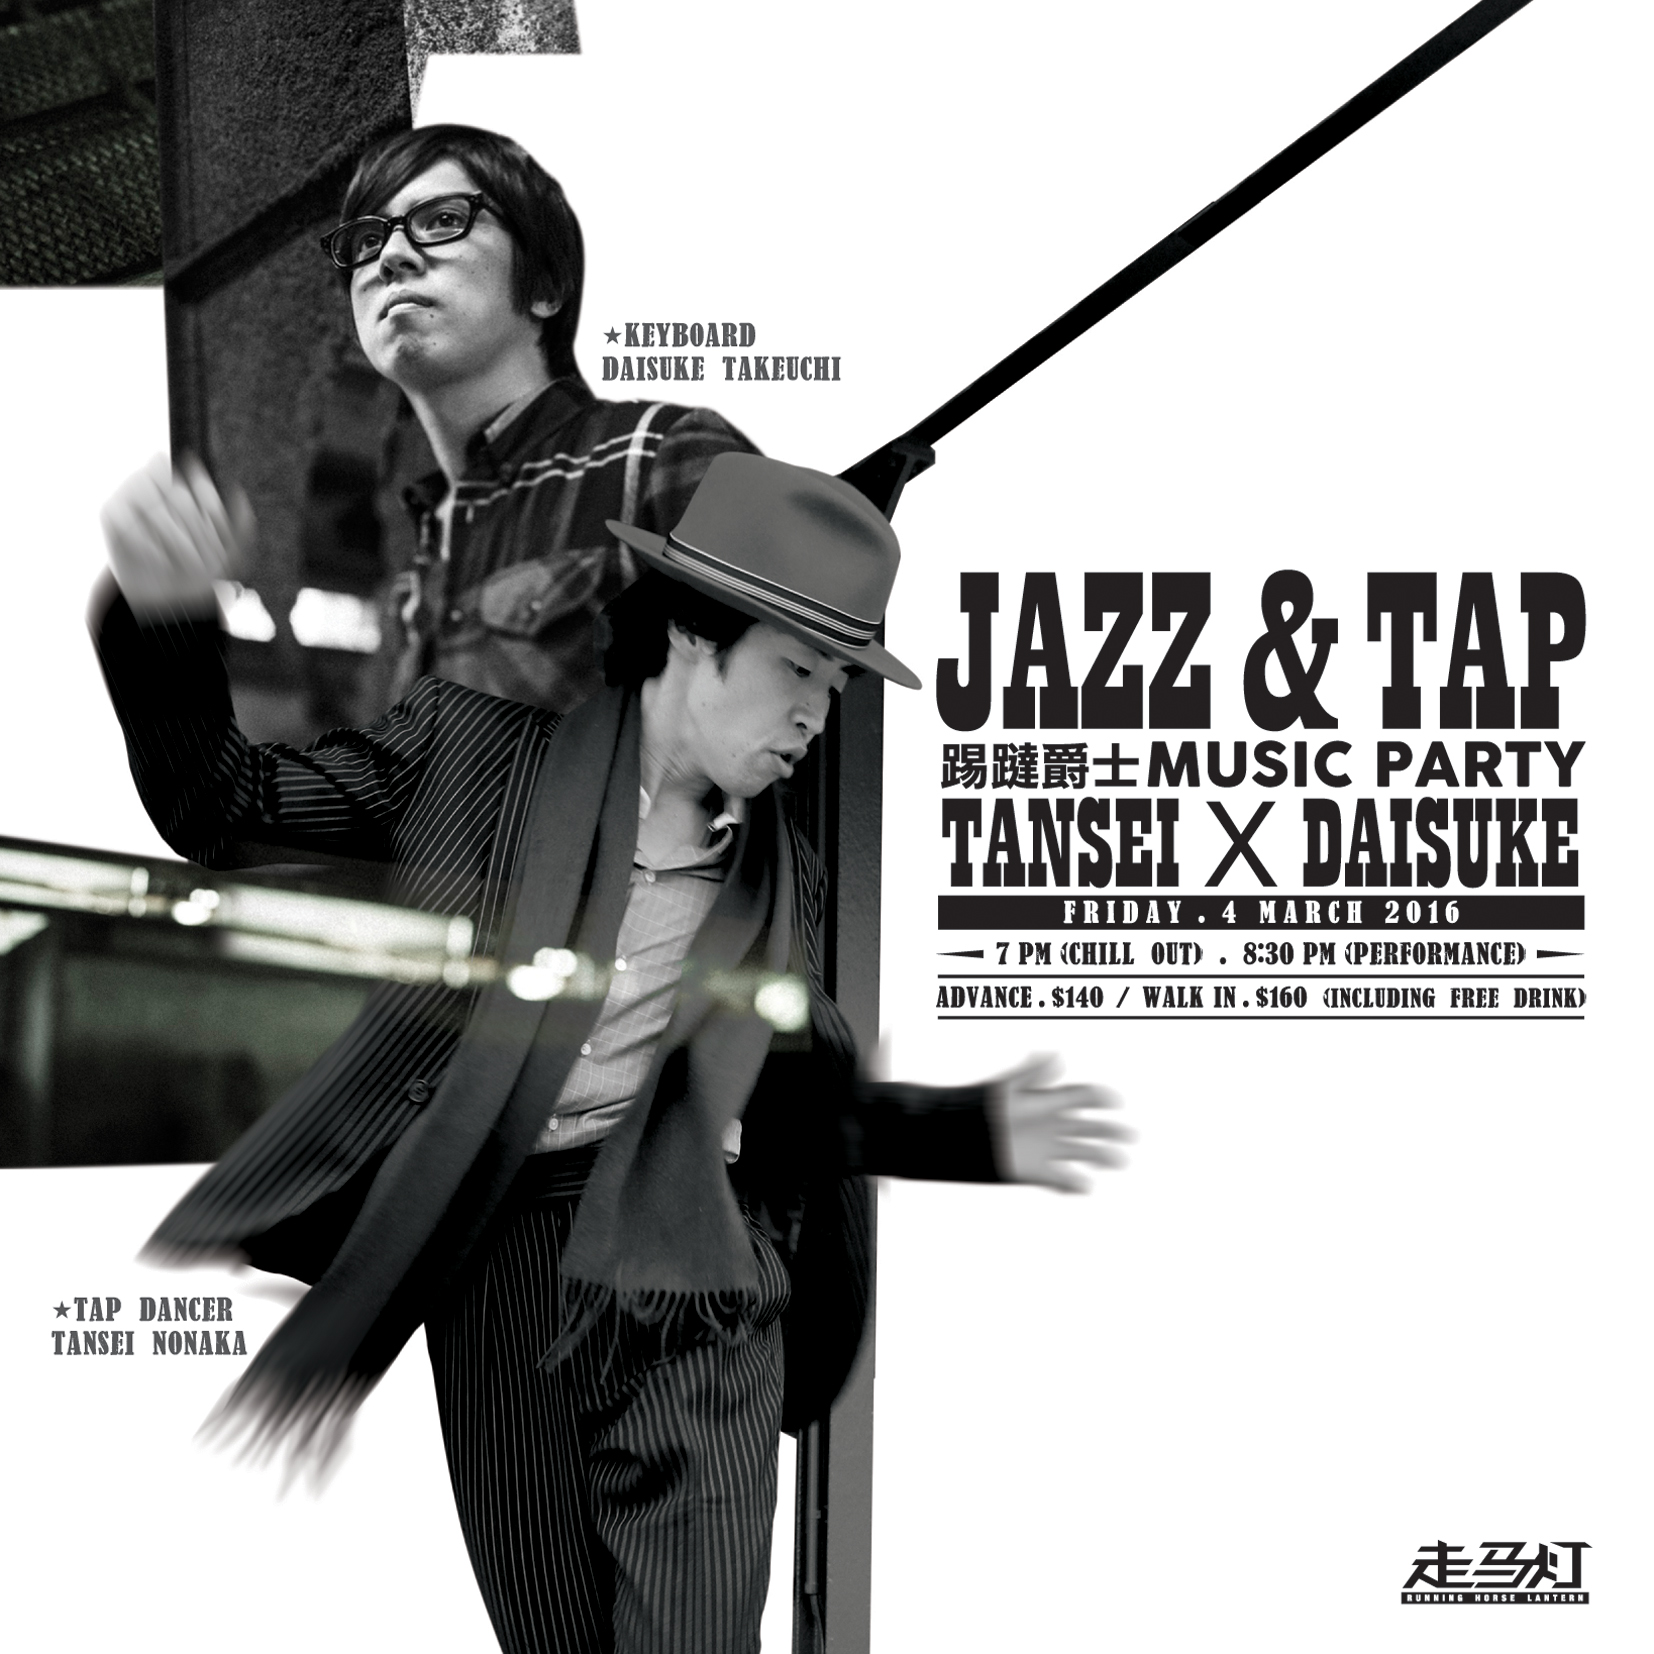 Jazz & Tap Music Party